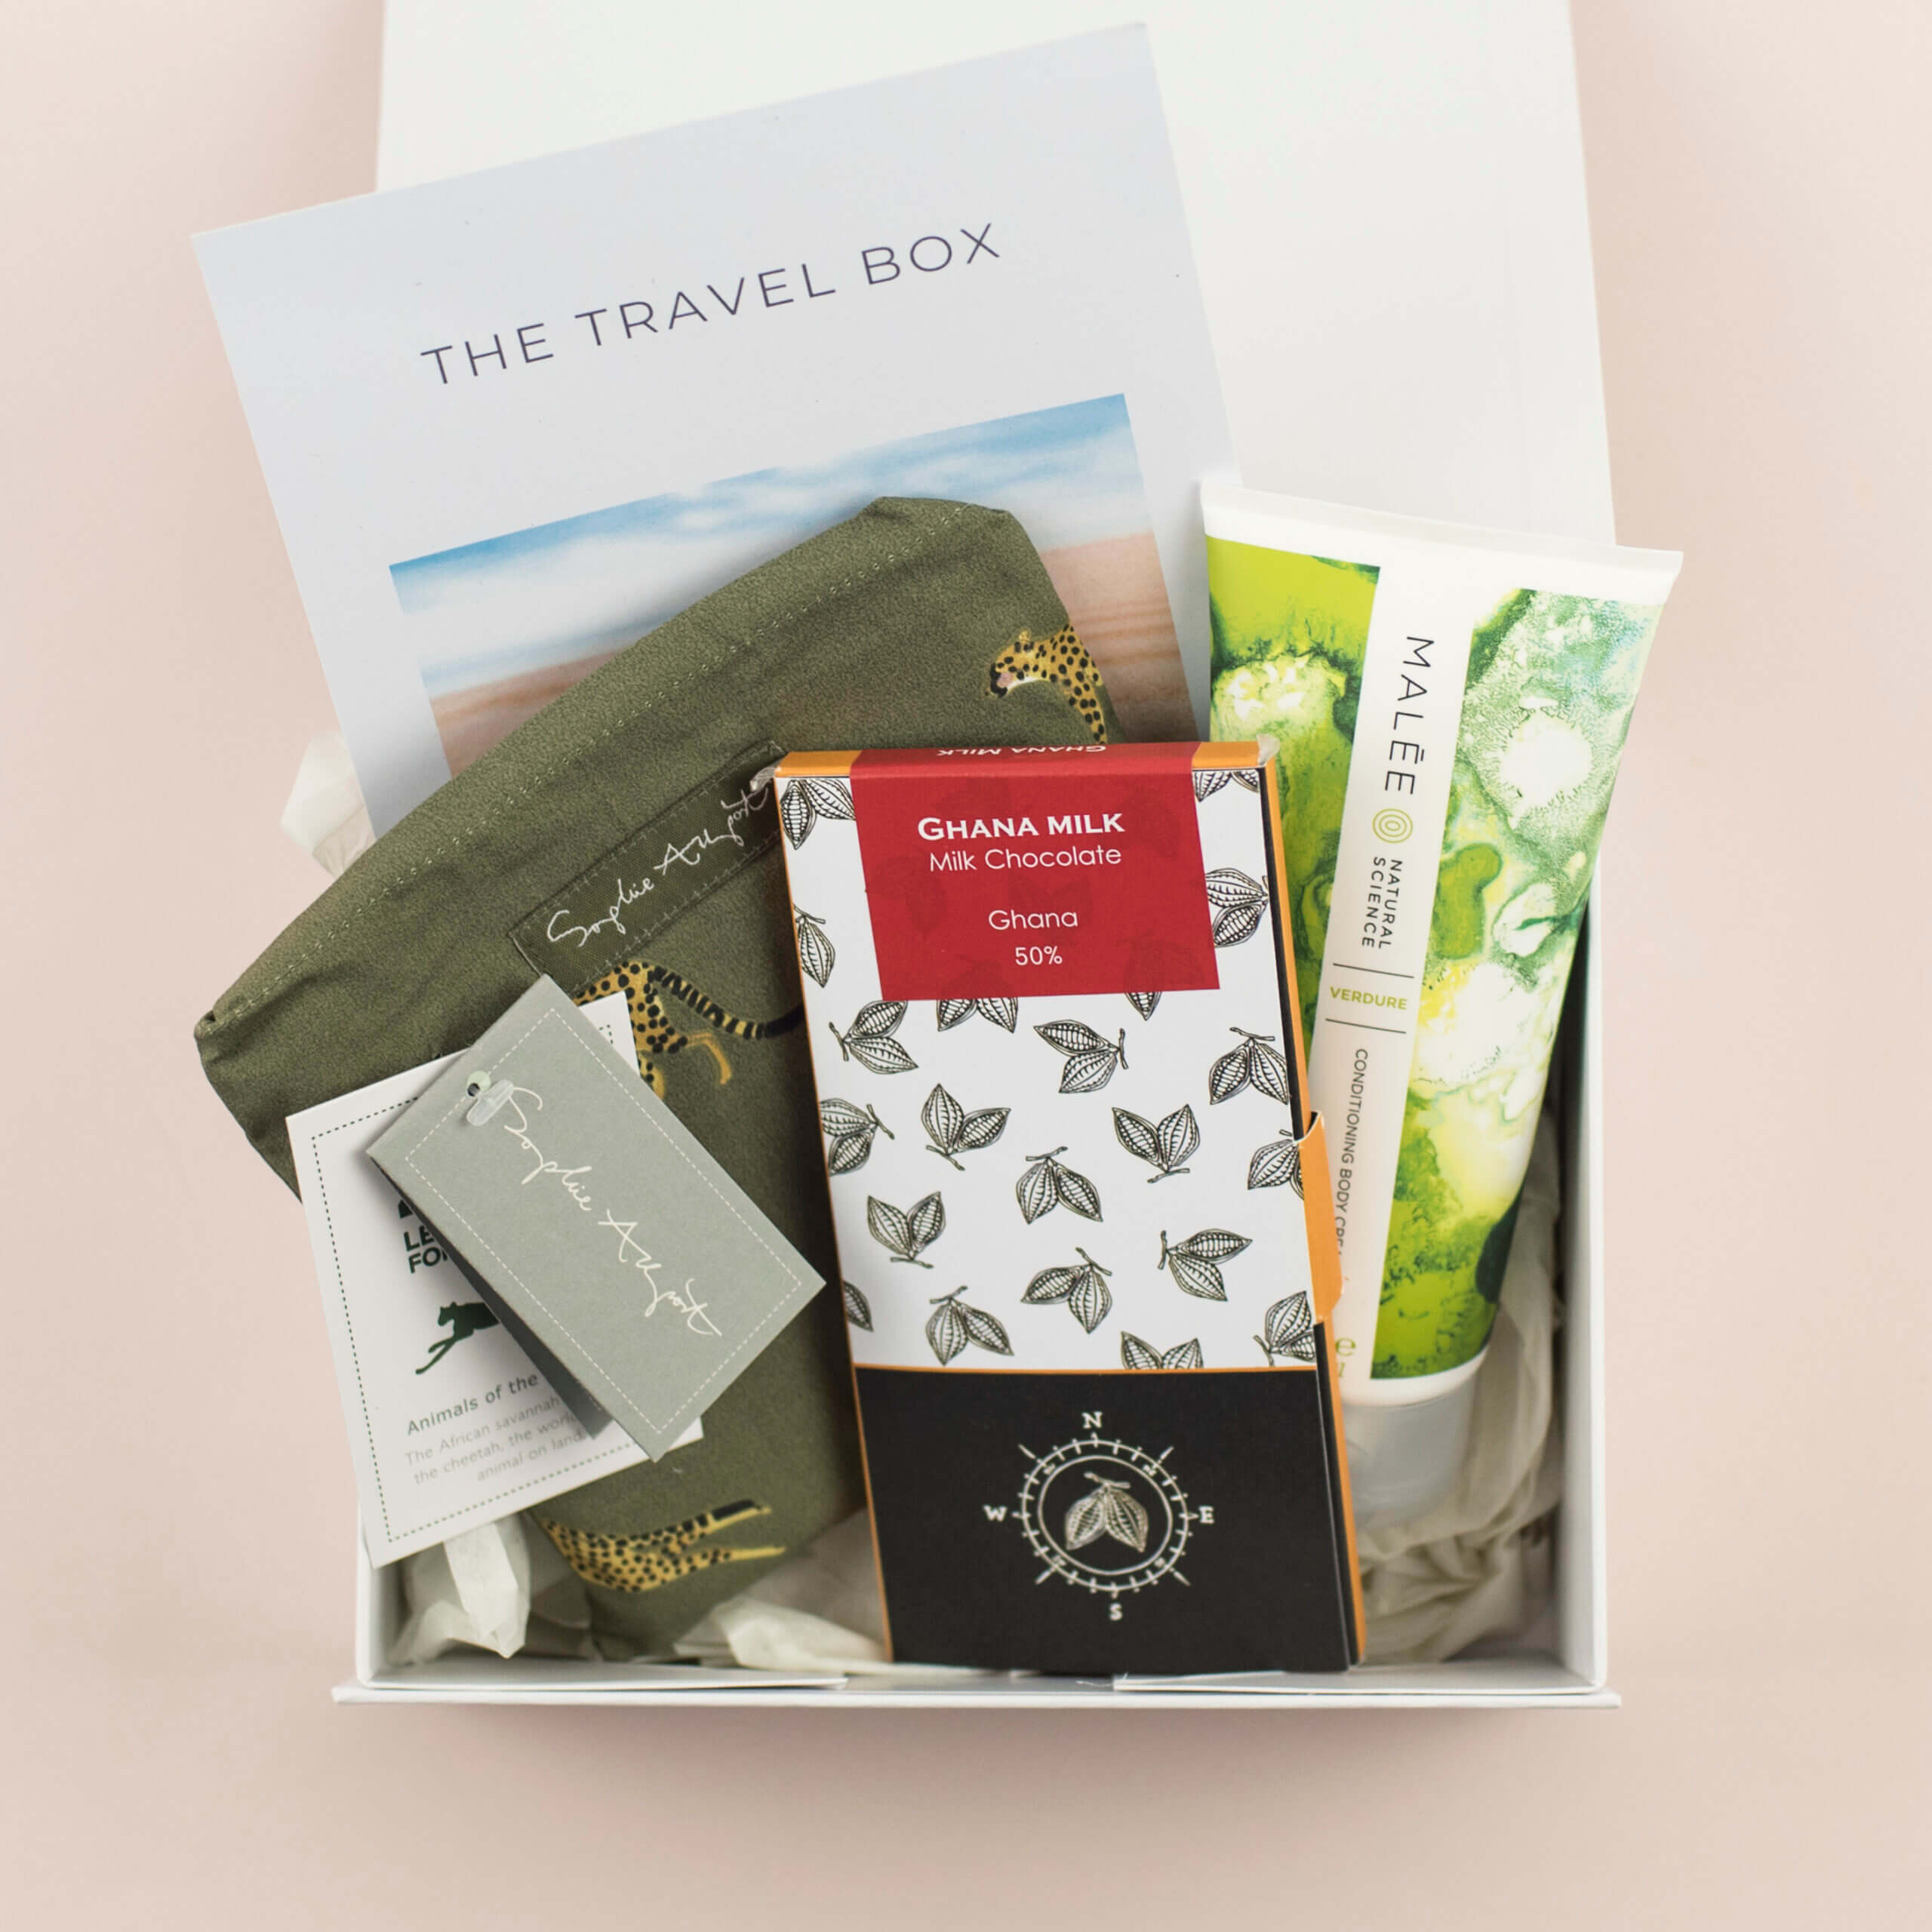 The Travel Box